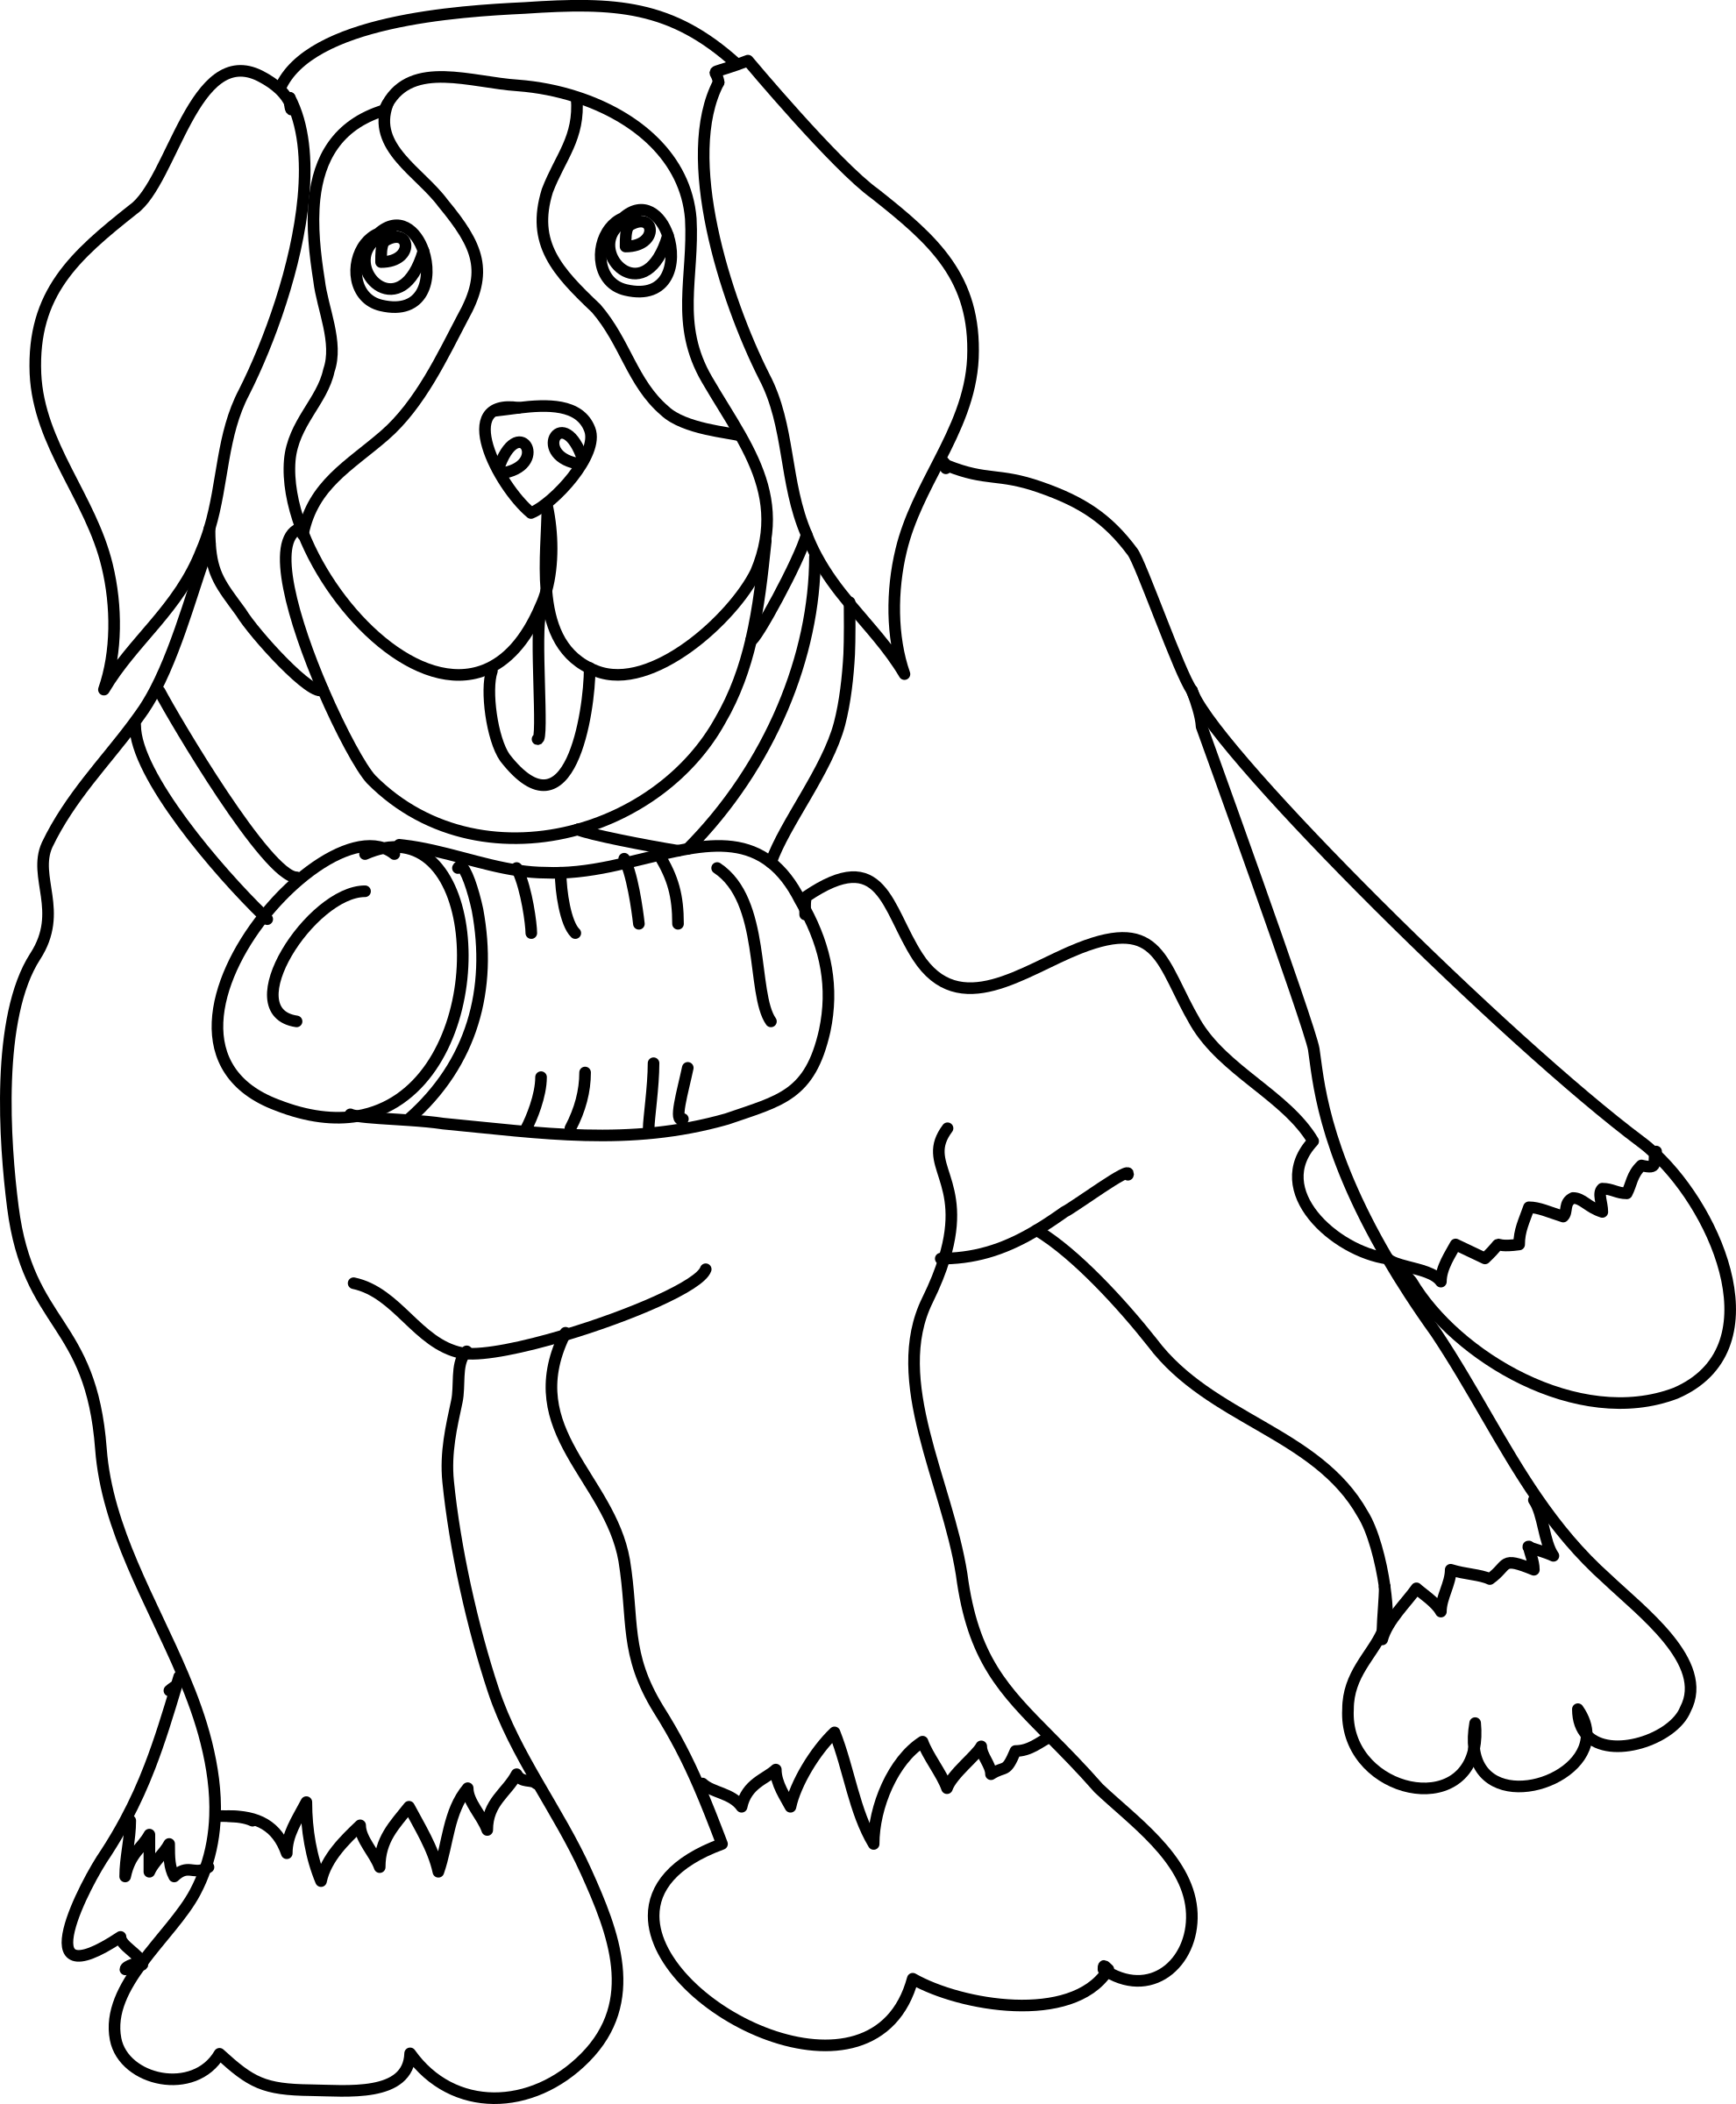 Dog in snow clipart clipart black and white library Dog Outline Drawing at GetDrawings.com | Free for personal use Dog ... clipart black and white library